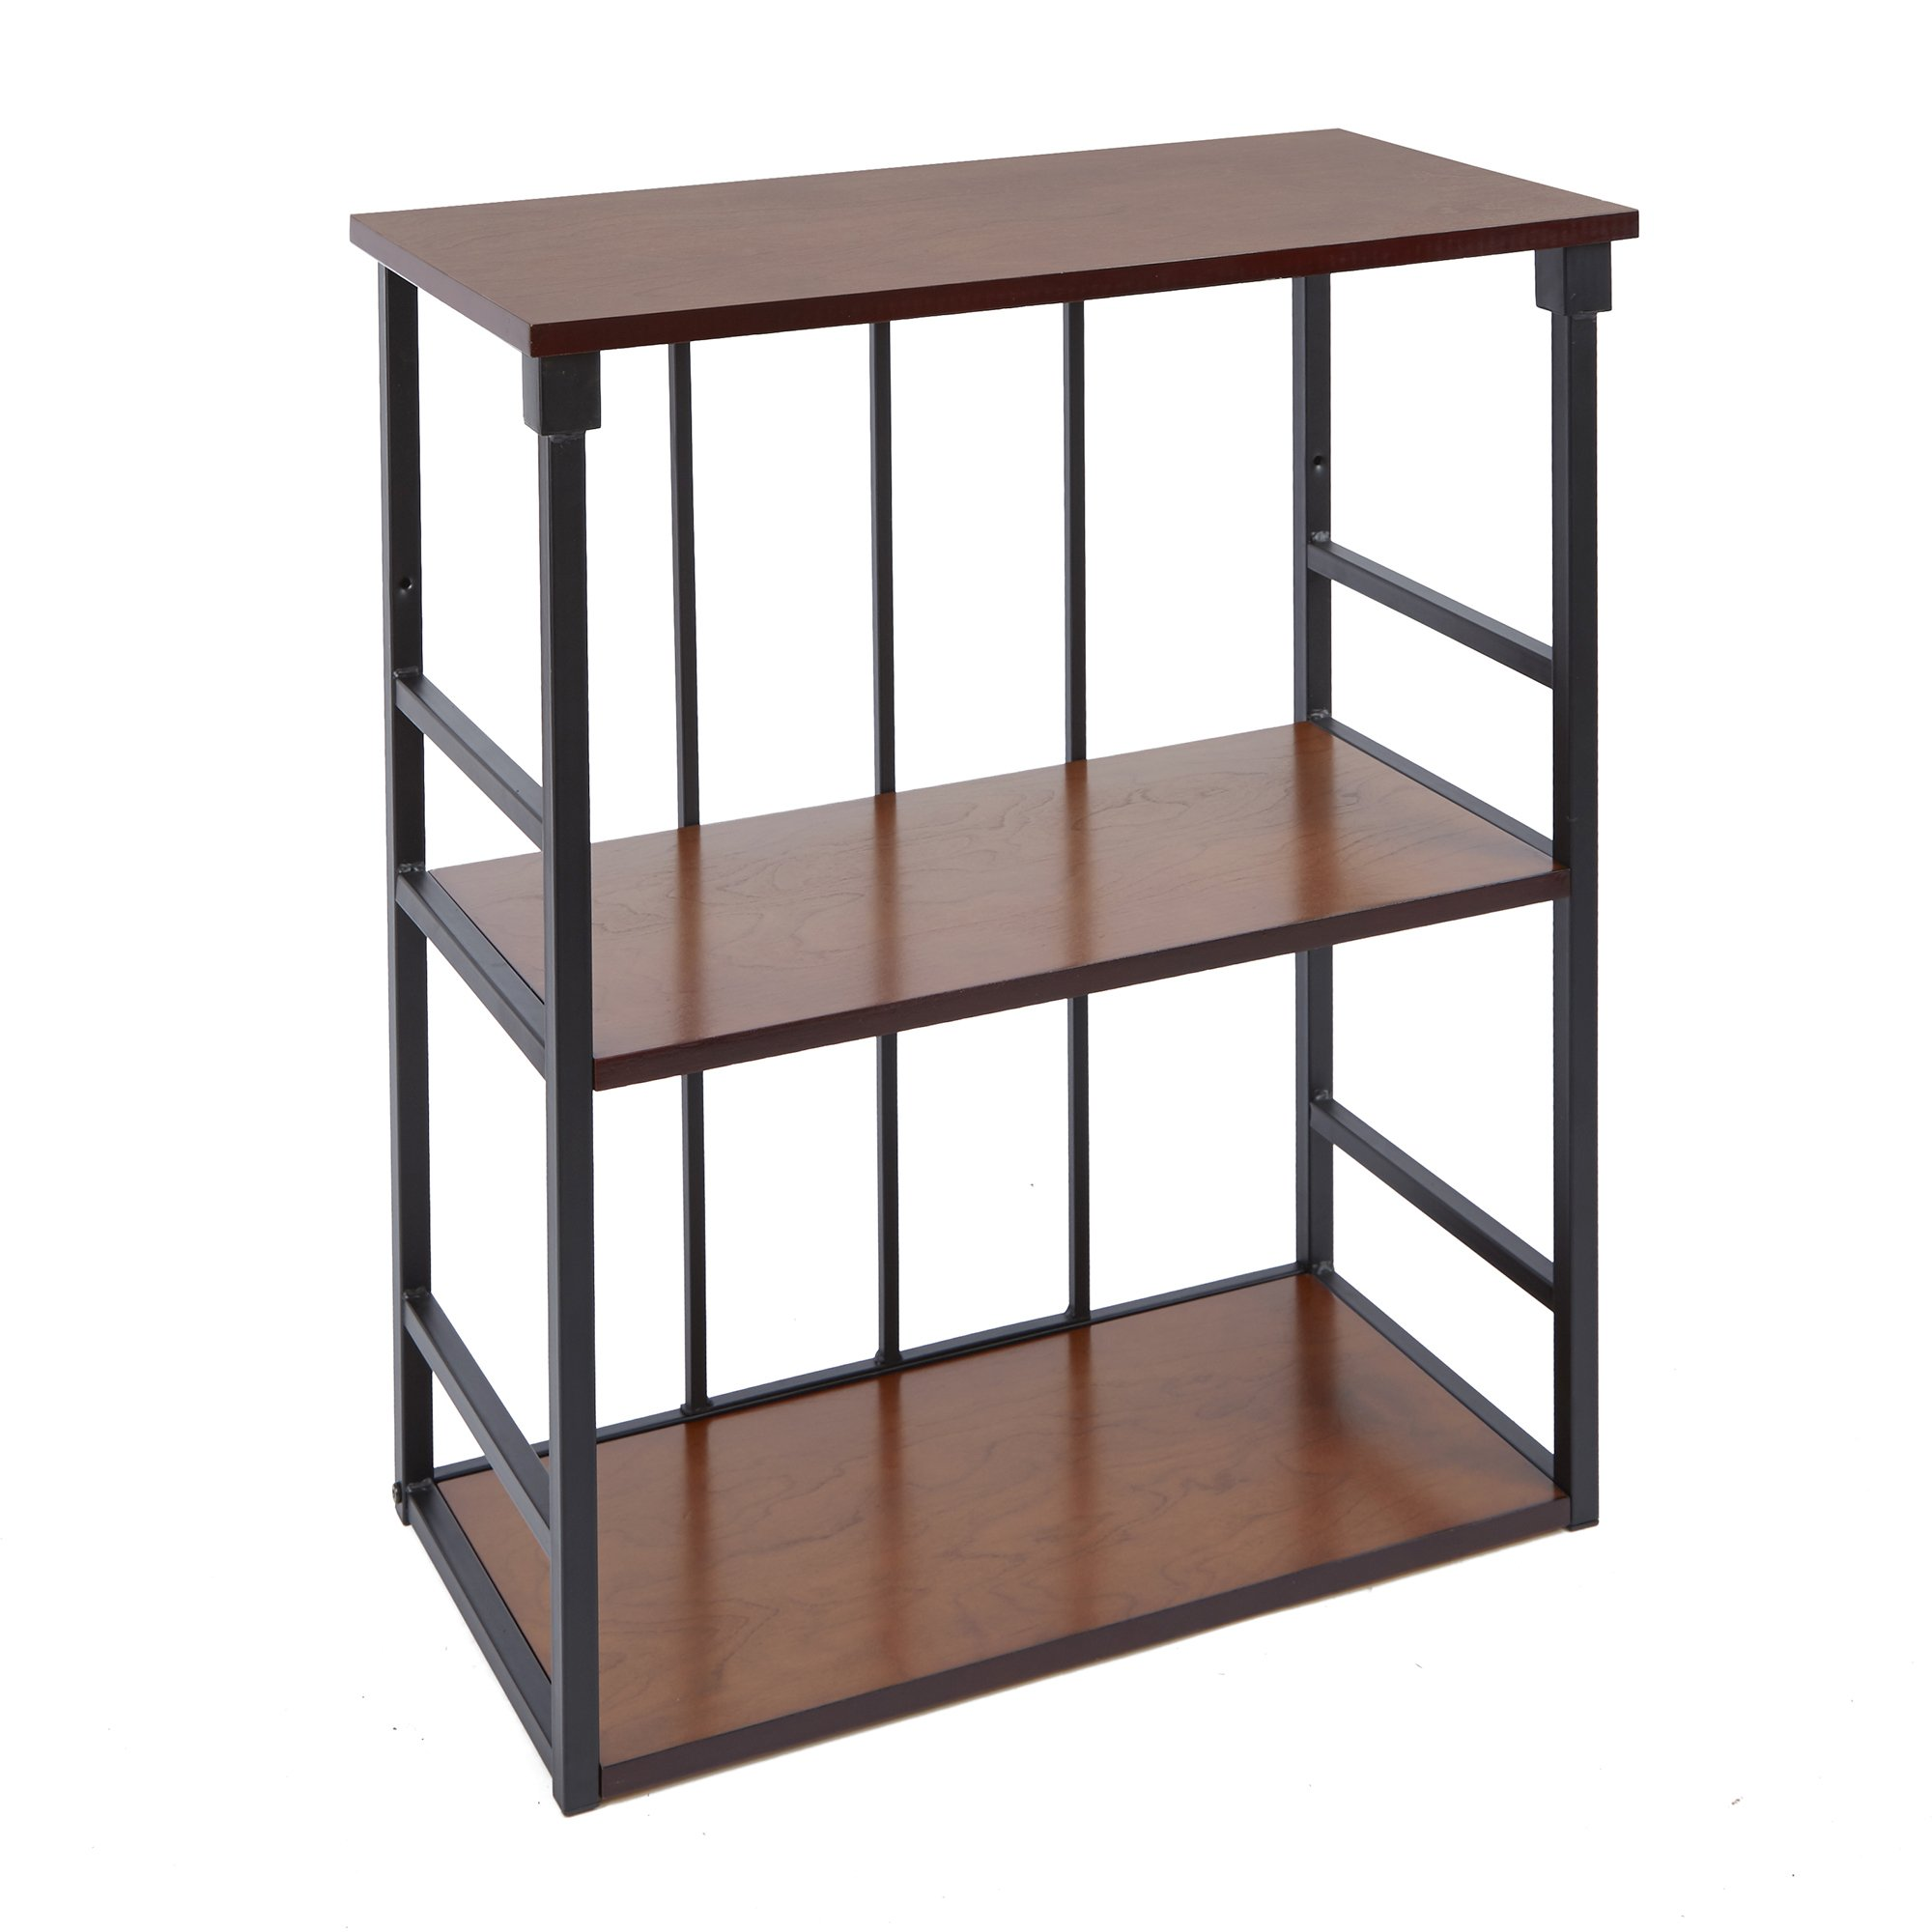 Silverwood Mixed Material Bathroom Collection 3-Tier Wall Shelf 3, 24'' W x 28'' H, Oil Rubbed Bronze